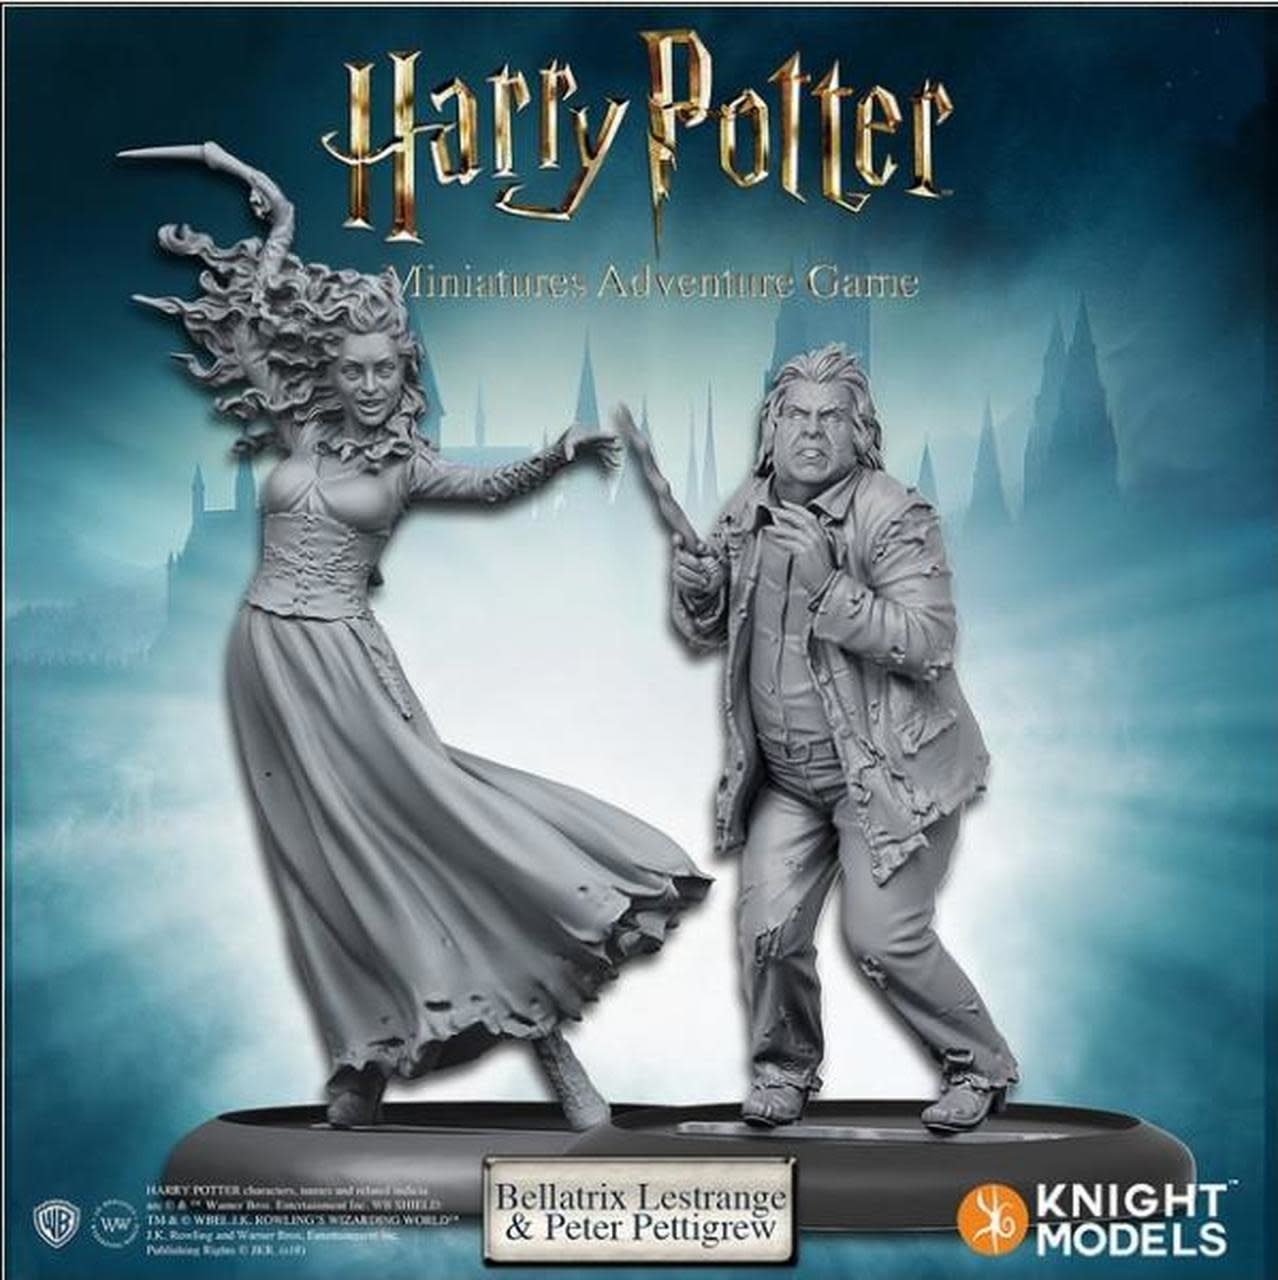 Knight Models Harry Potter Miniatures Adventure Game: Bellatrix & Wormtail